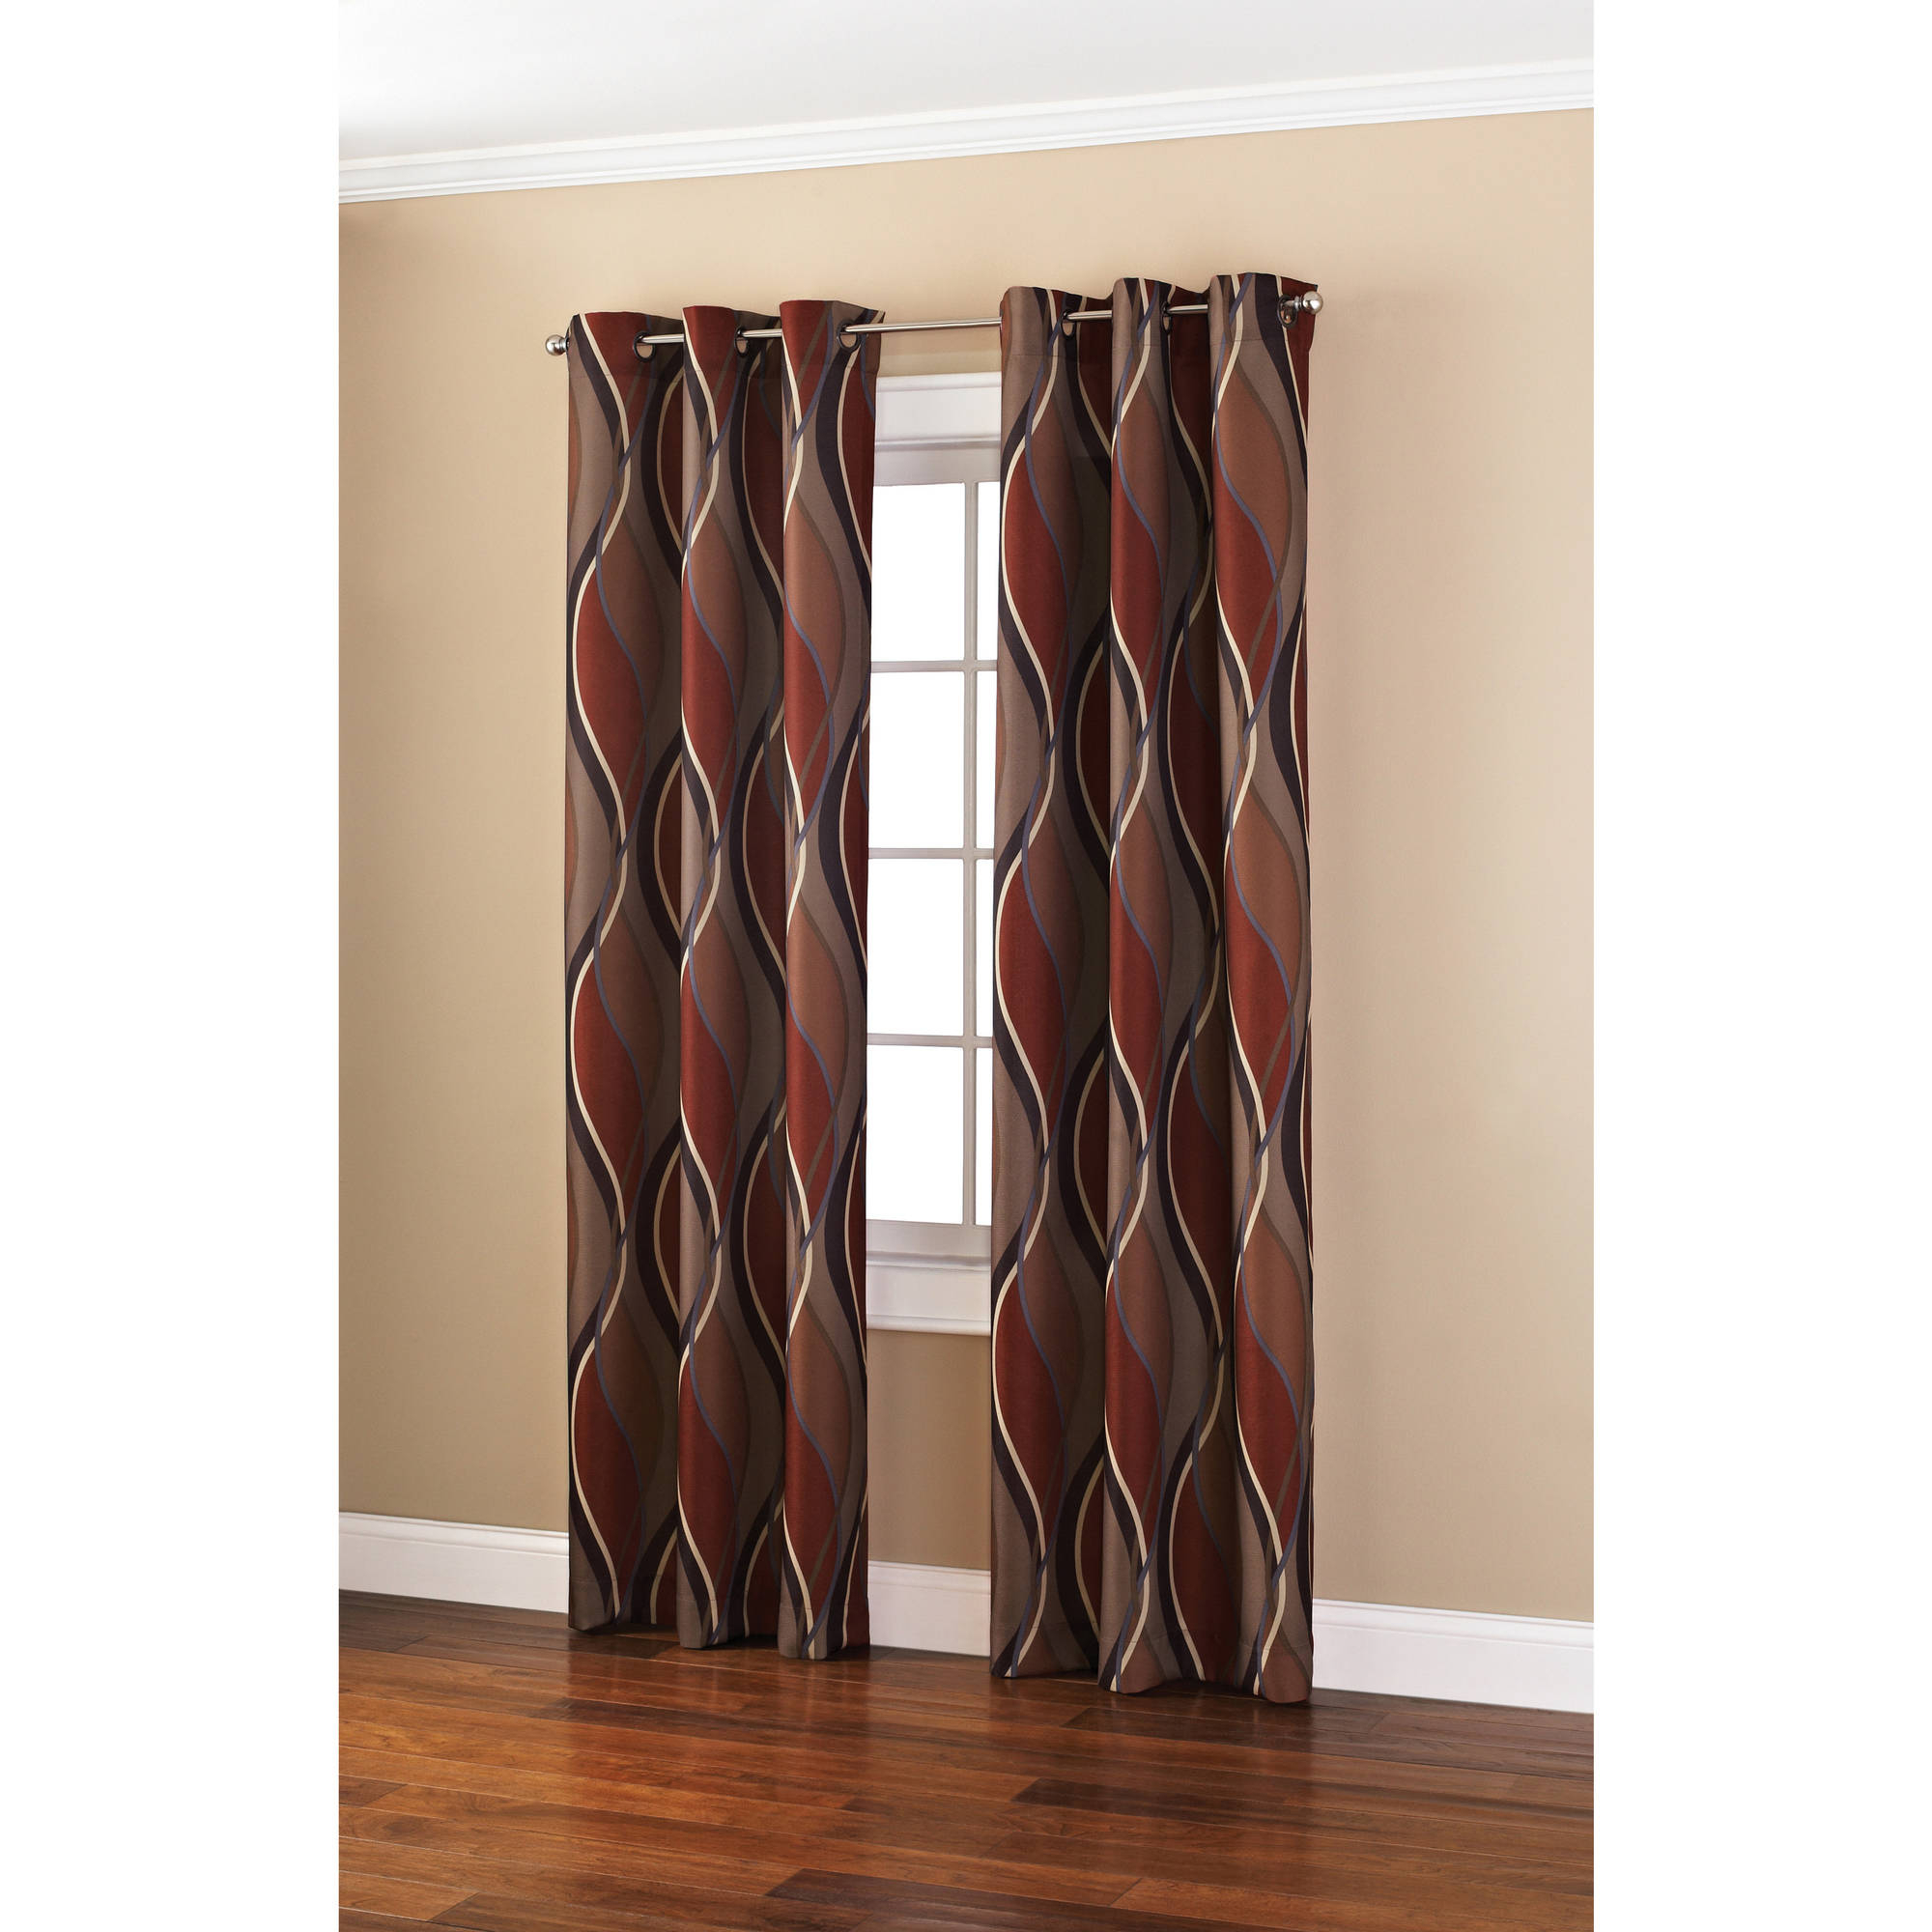 Latest Mainstays Wave Print Casual Curtain Panel – Walmart Within Intersect Grommet Woven Print Window Curtain Panels (Gallery 12 of 20)